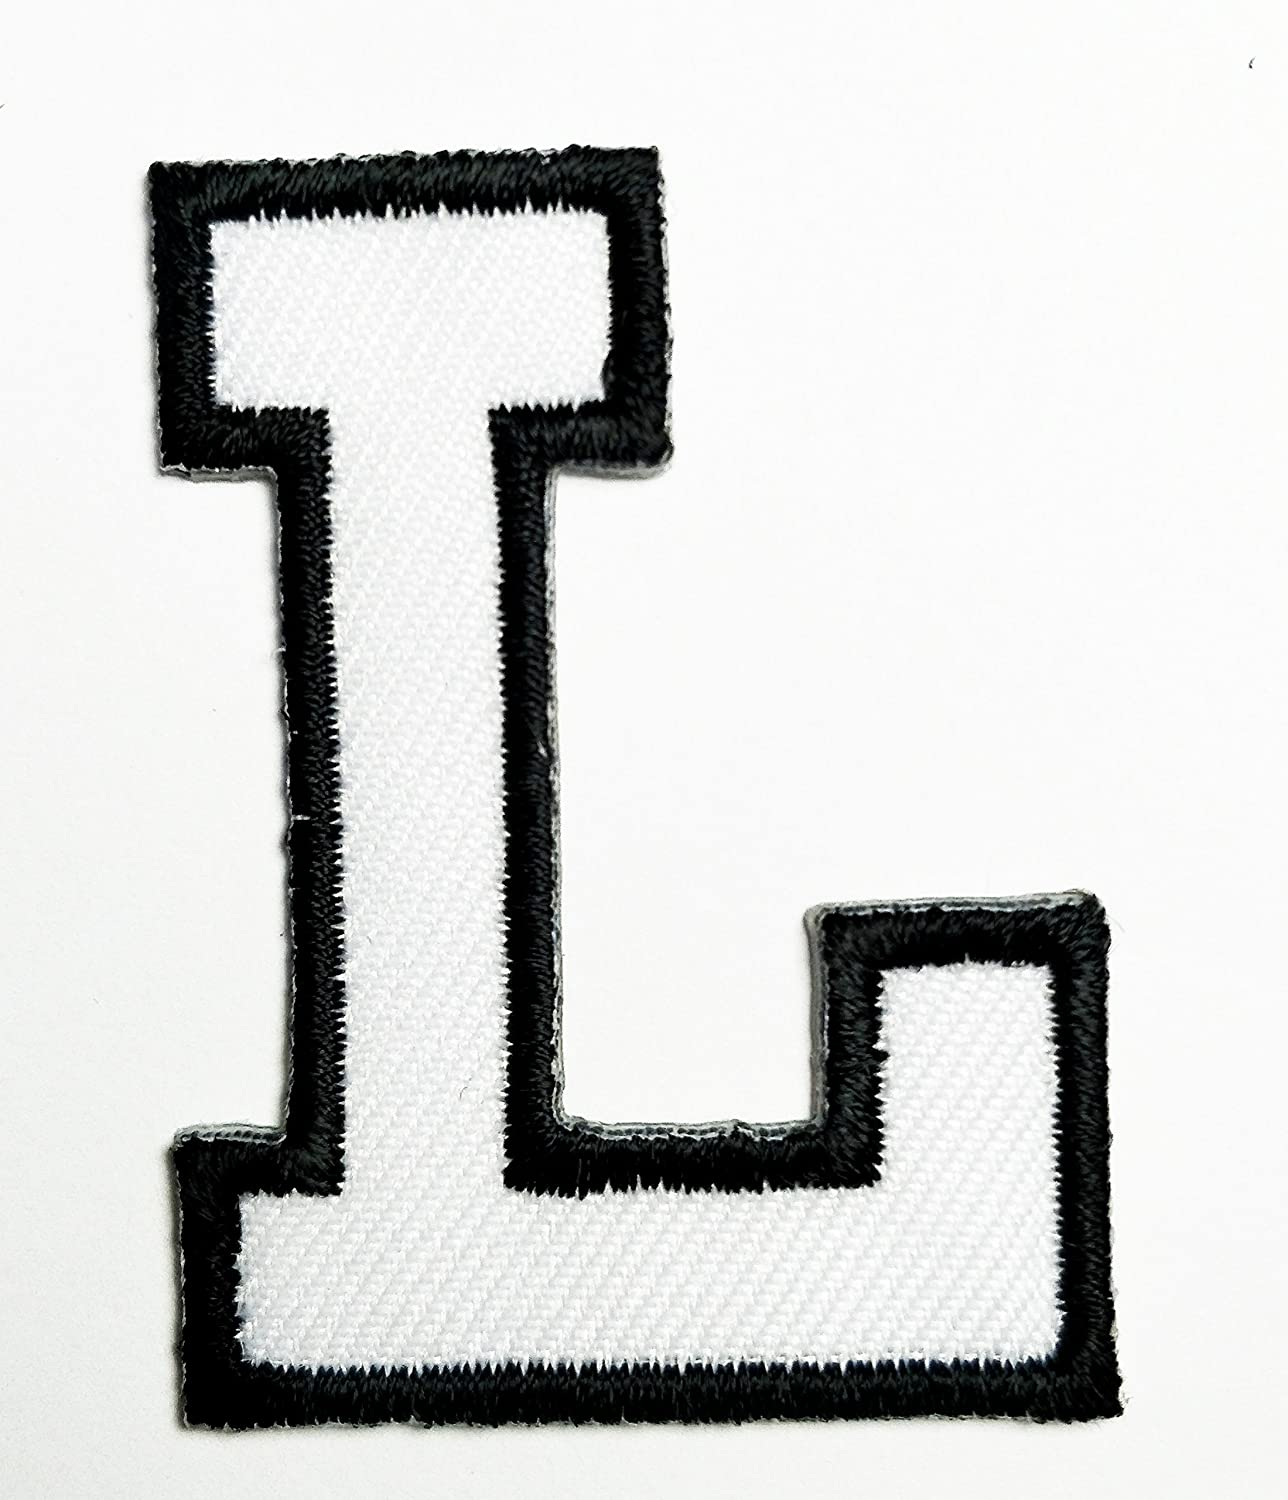 HHO White letter L Patch English Alphabet Character Embroidered DIY Patches, Cute Applique Sew Iron on Kids Craft Patch for Bags Jackets Jeans Clothes